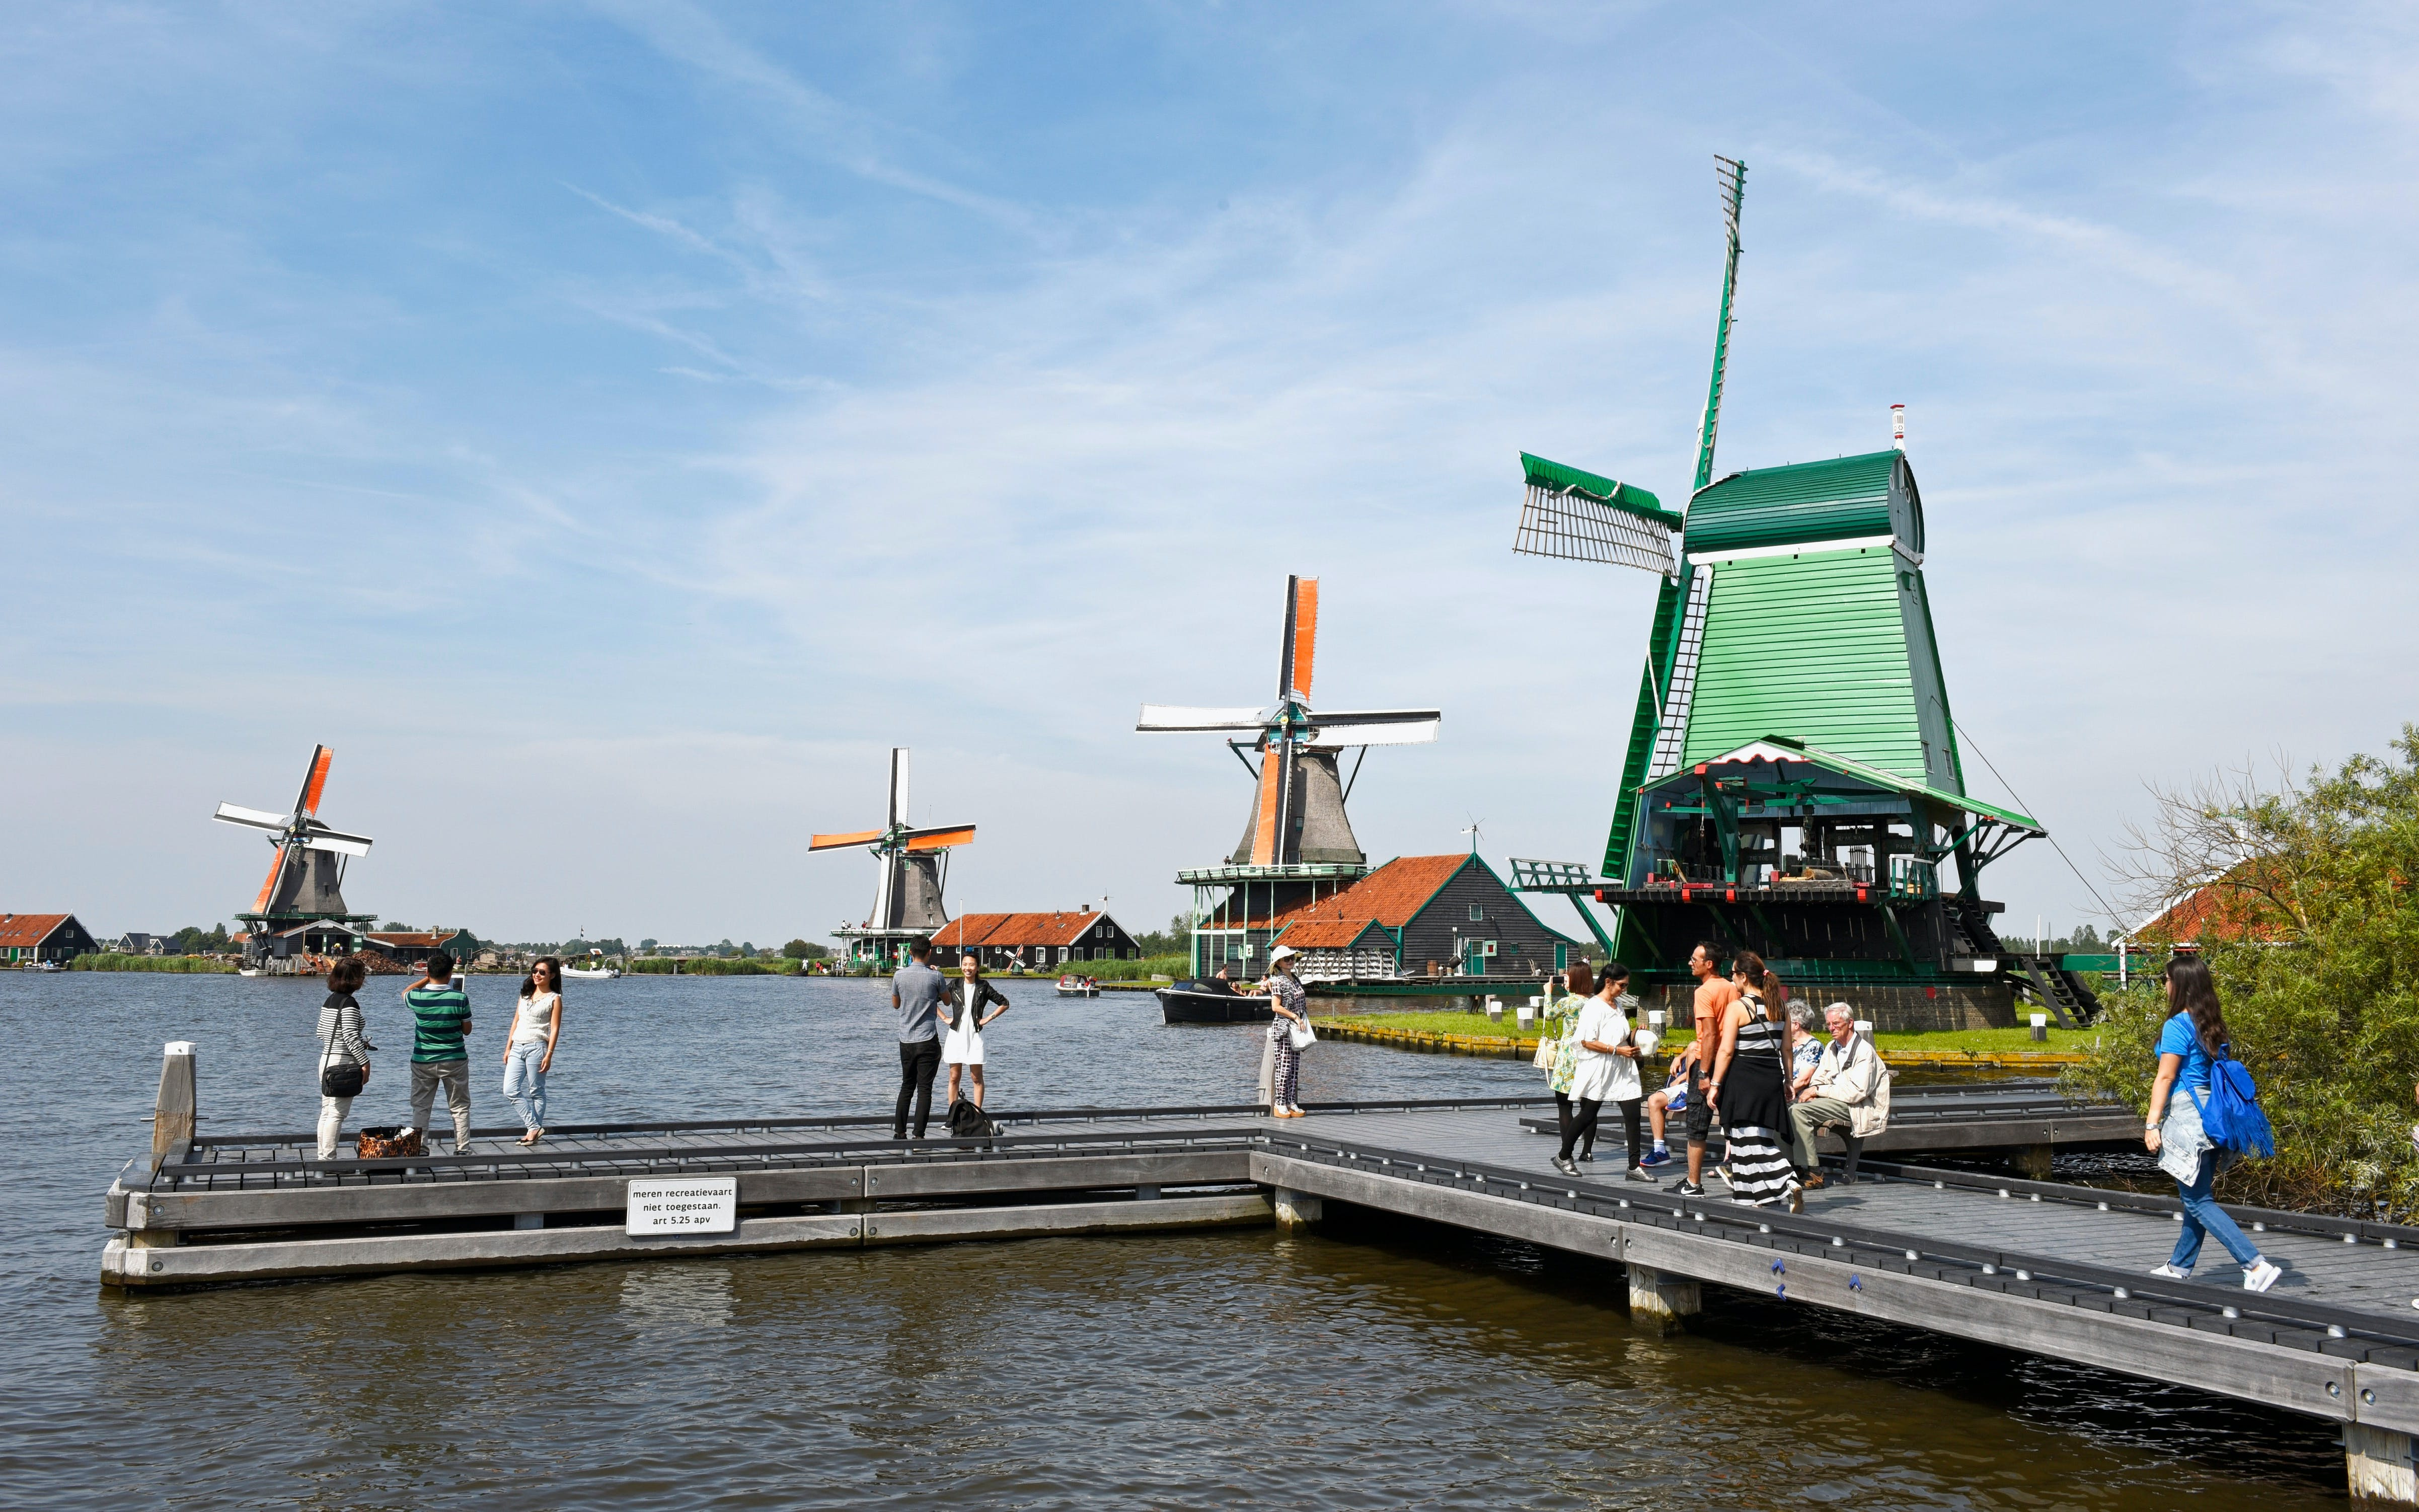 half day trip to zaanse schans from amsterdam-2